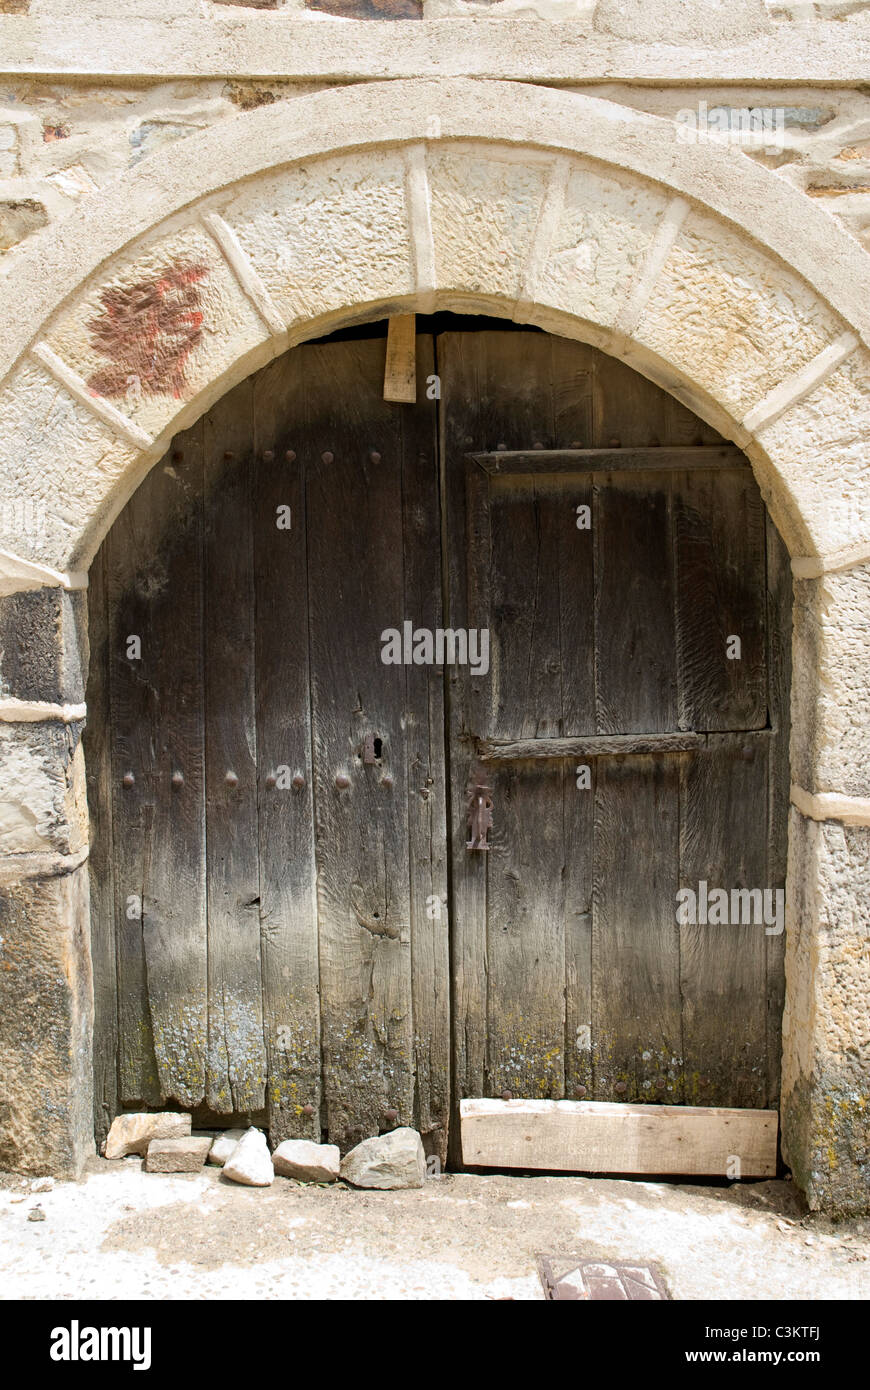 Traditional arched doorway along the pilgrimage route, Camino de Santiago, Northern Spain - Stock Image